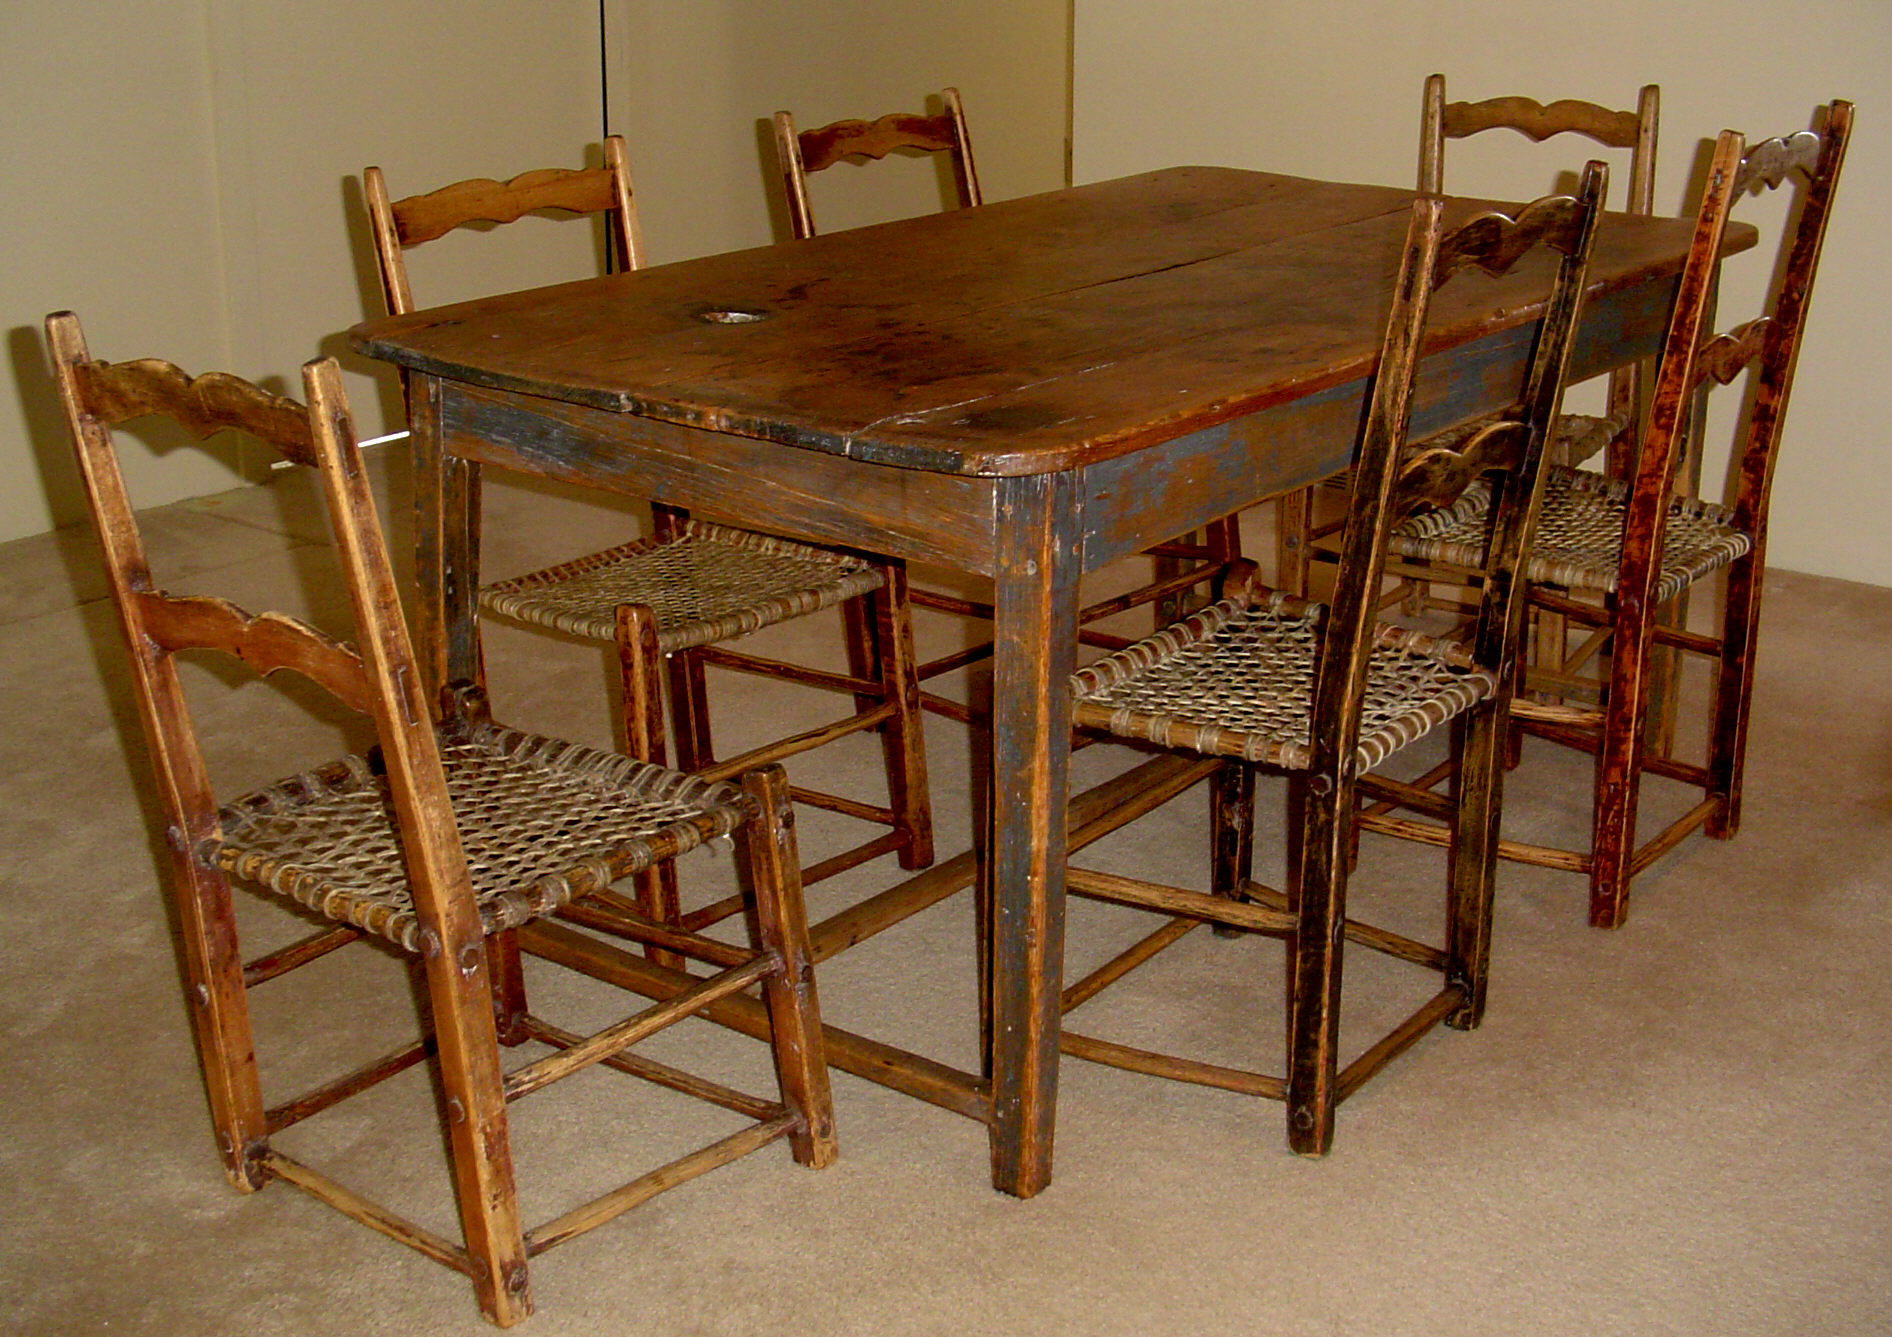 wood chairs for sale chair covers hire liverpool primitive kitchen set canadian pine furniture